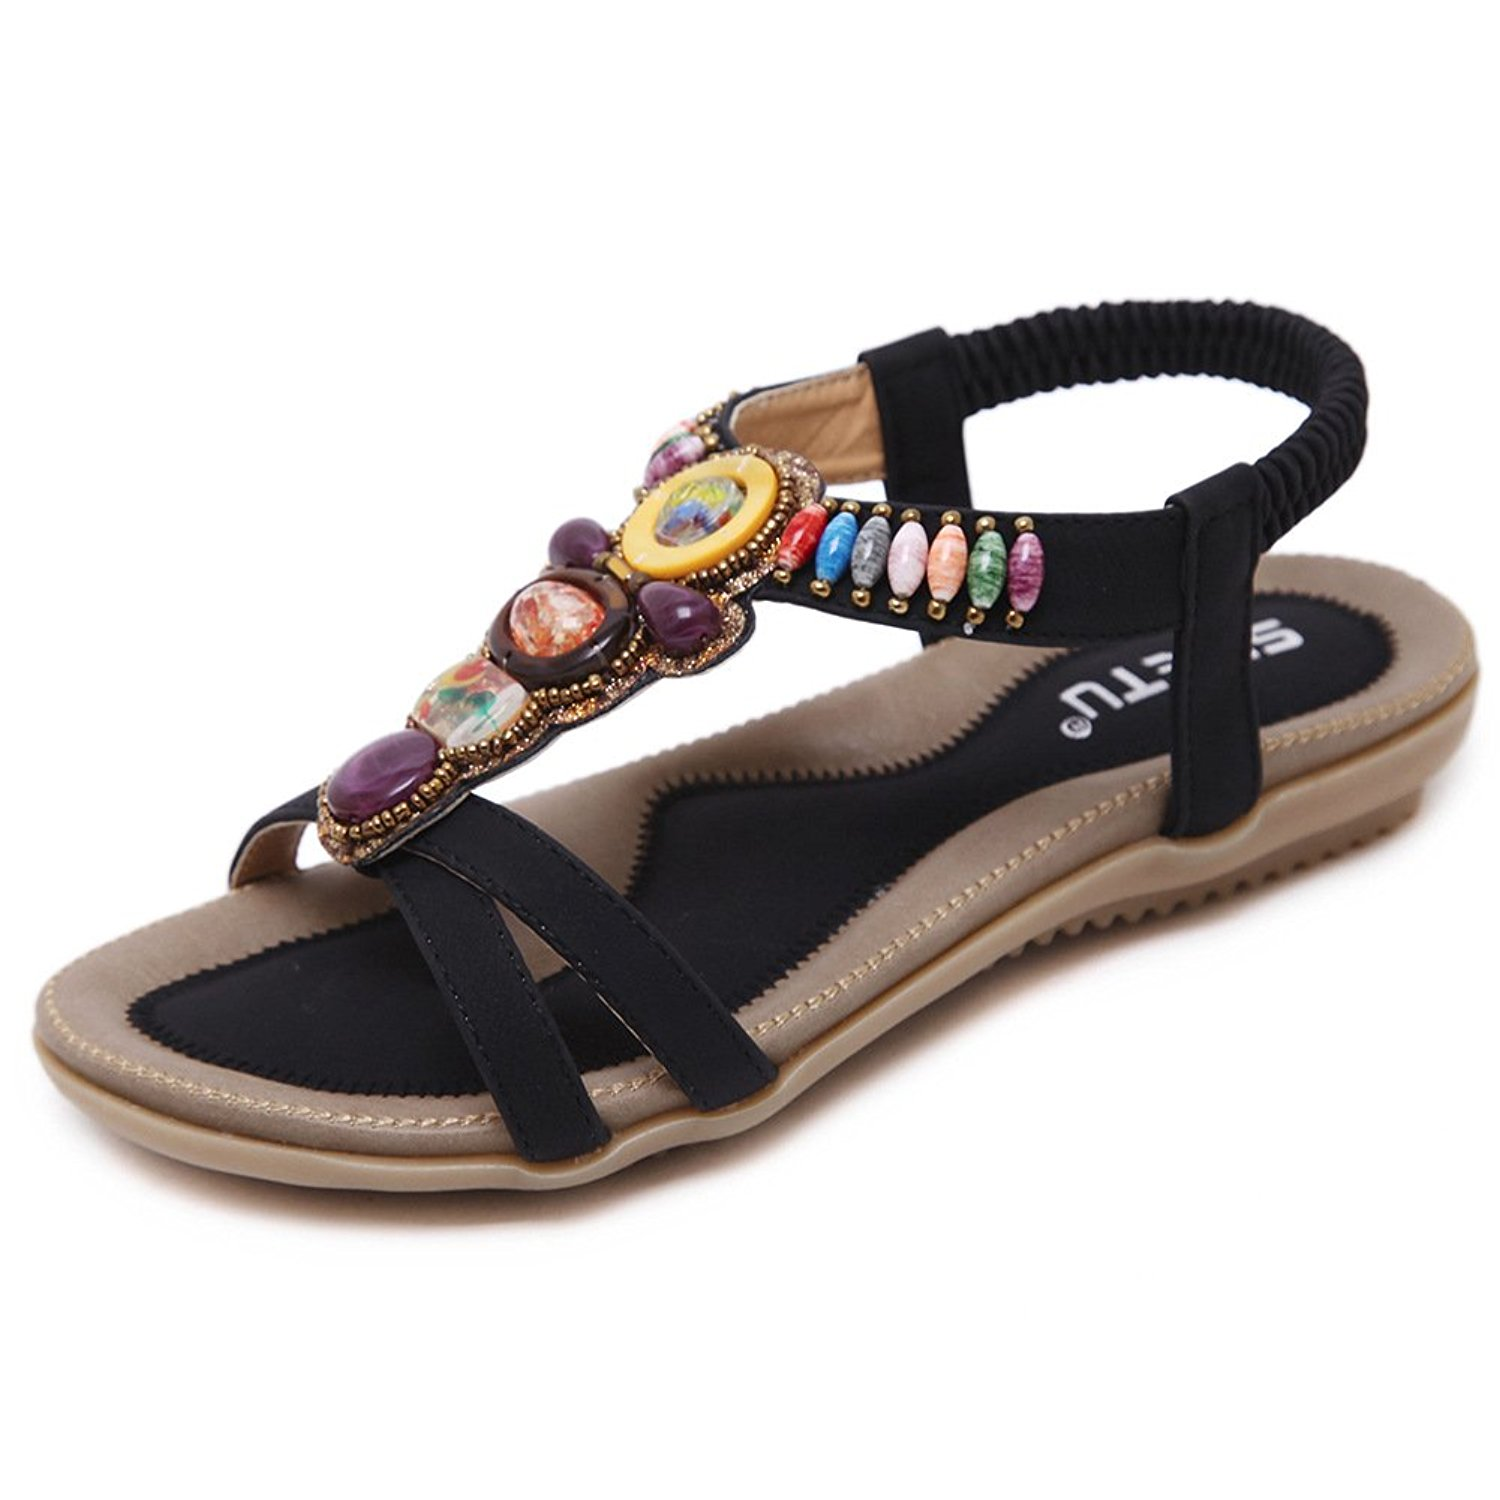 067eff440ffc Get Quotations · SWQZVT Women s Beaded Rhinestone Bohemian Gladiator Summer  T-Strap Flat Sandals Elastic Beach Flip Flops